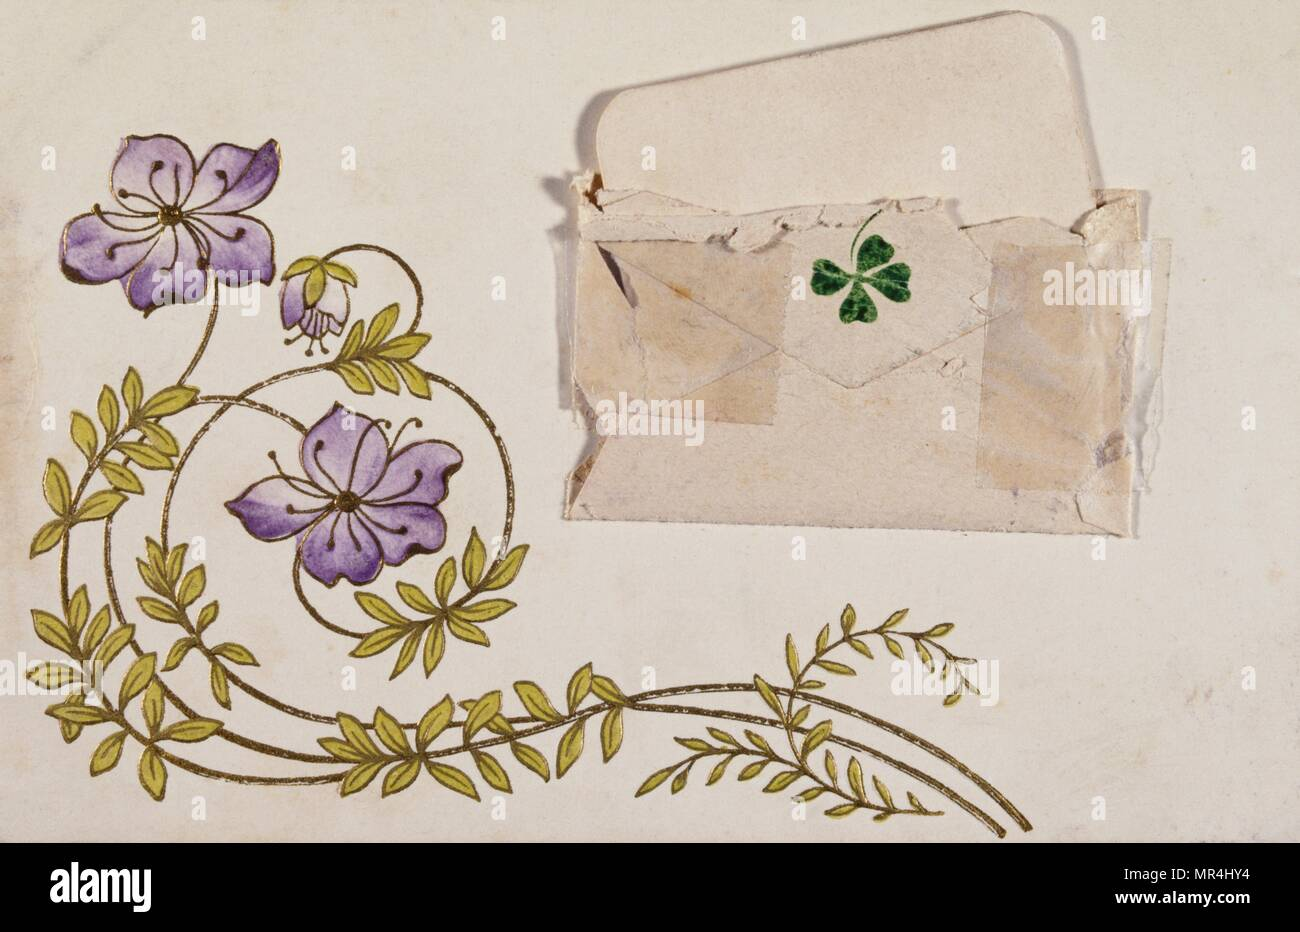 Vintage French postcard illustrated with mauve flowers and a four leaf clover roses. 1900 - Stock Image